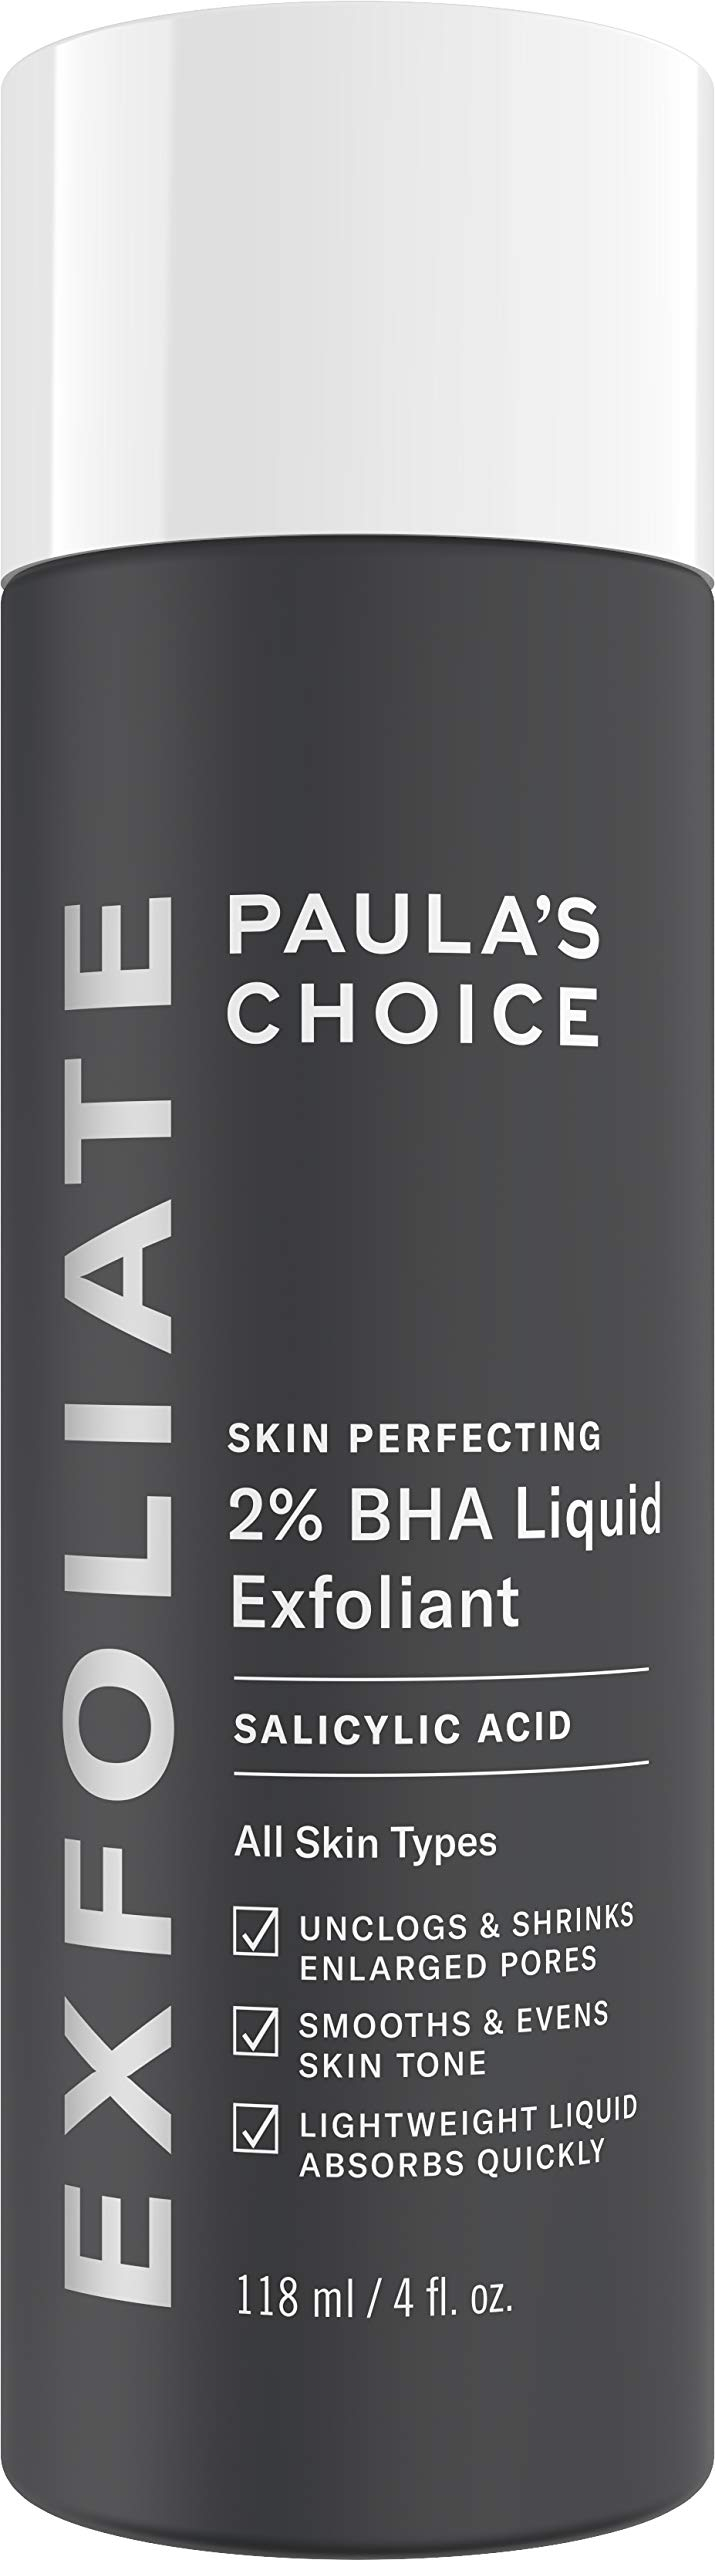 Paulas Choice--SKIN PERFECTING 2% BHA Liquid Salicylic Acid Exfoliant--Facial Exfoliant for Blackheads, Enlarged Pores, Wrinkles & Fine Lines, 4 oz Bottle by Paula's Choice